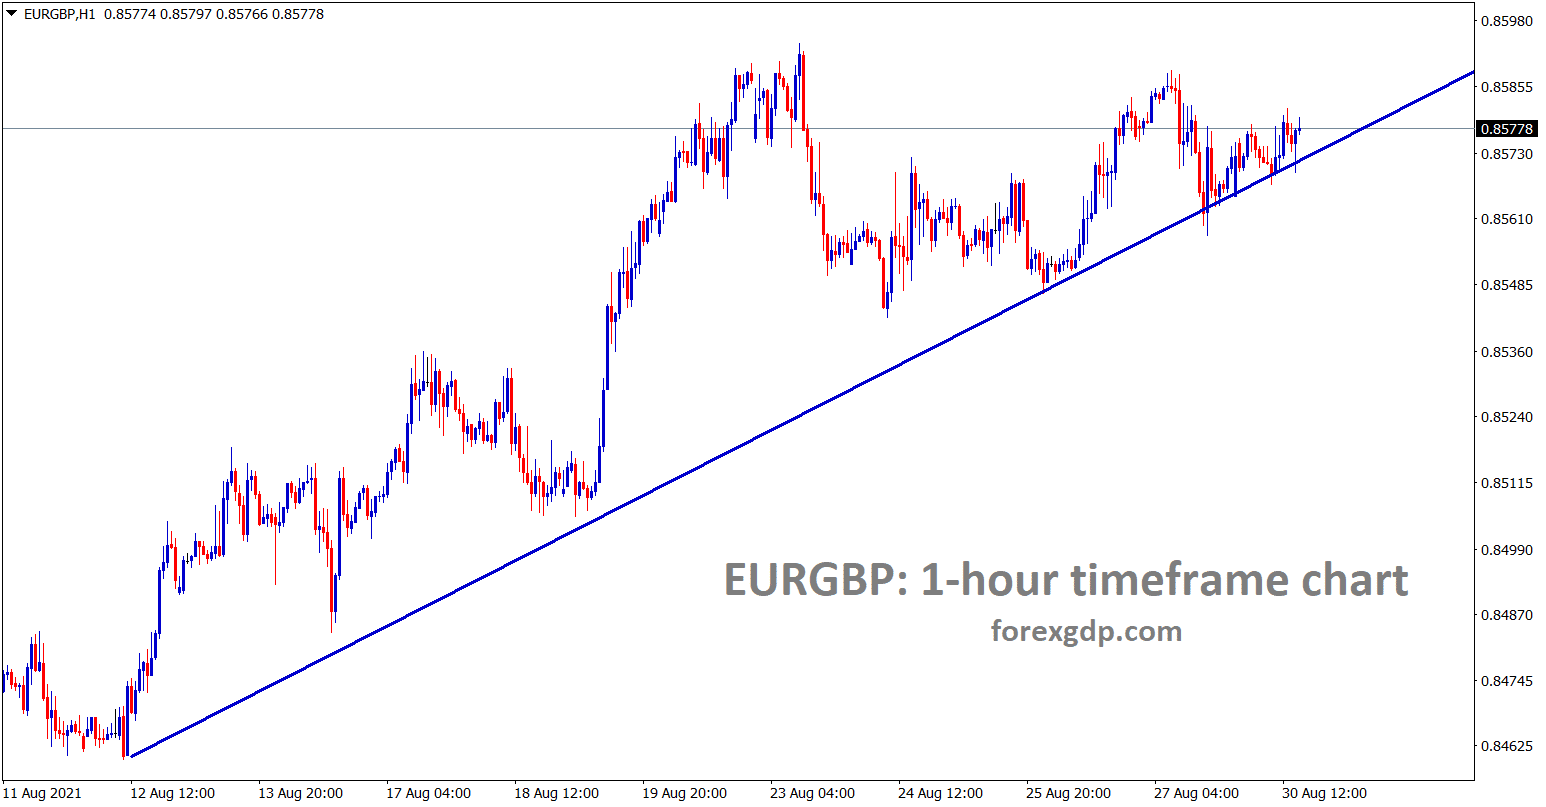 EURGBP is moving in an uptrend line forming continuous lows